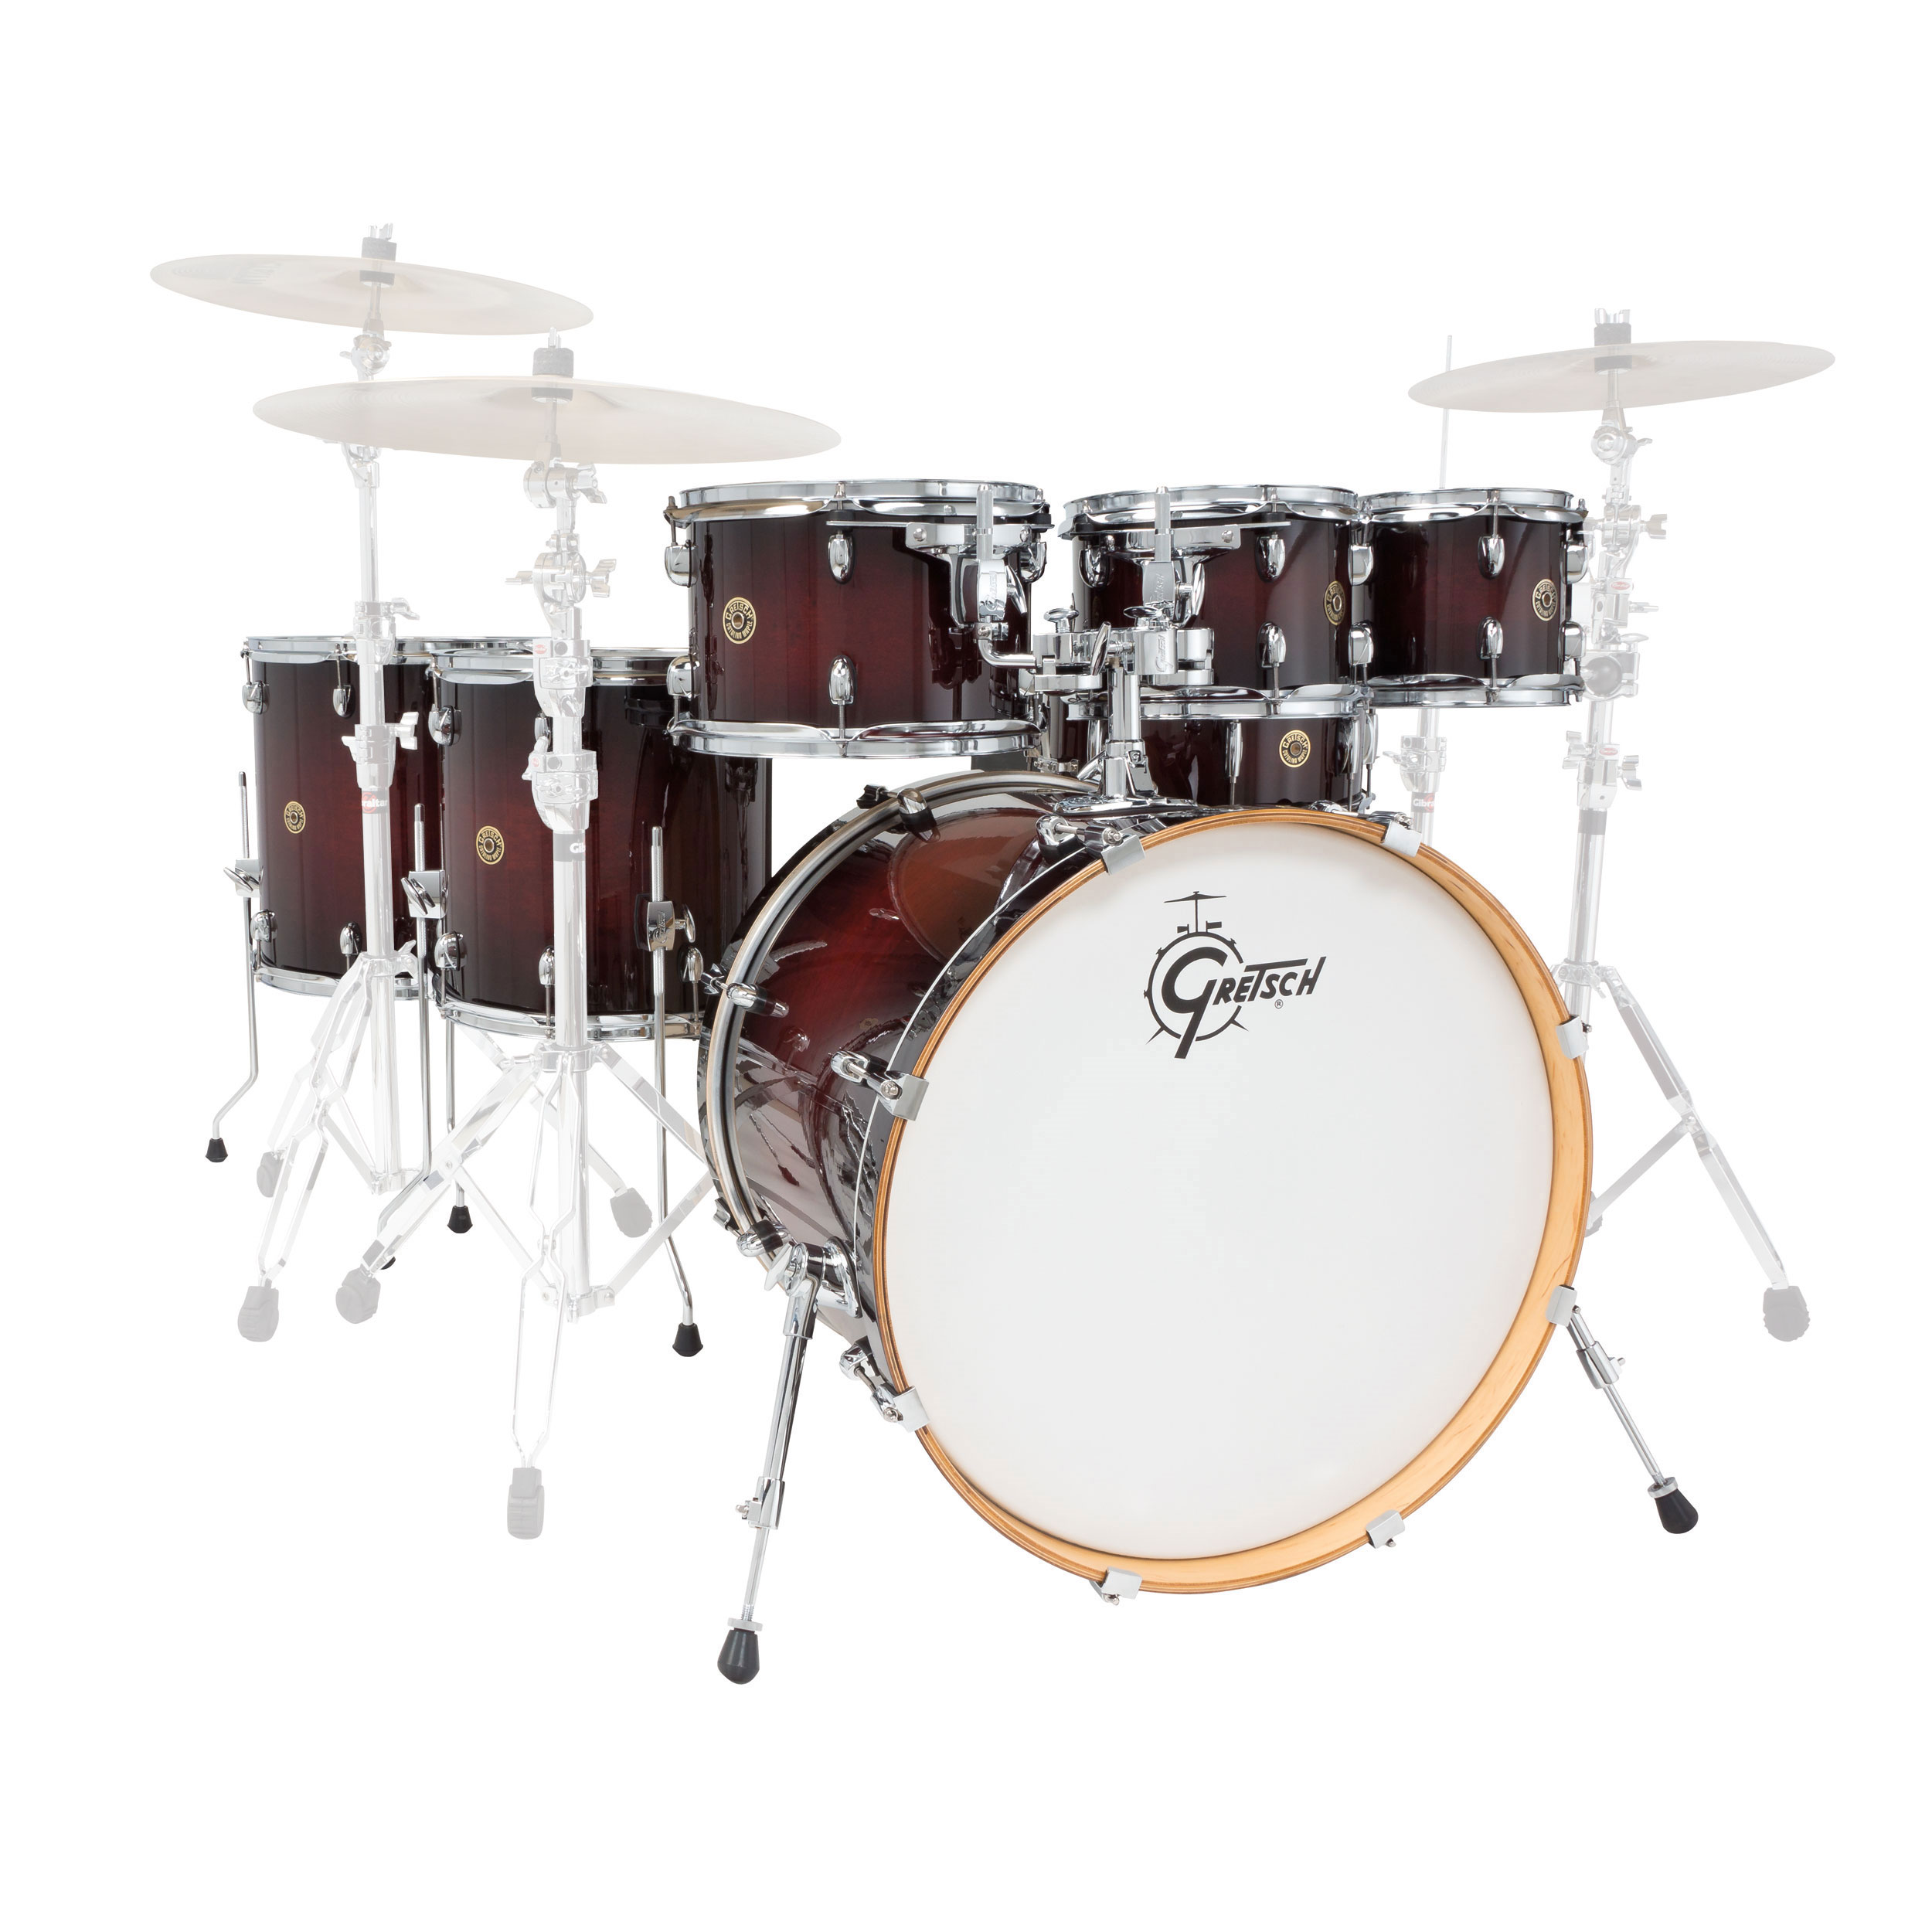 "Gretsch Catalina Maple CM1 7-Piece Drum Set Shell Pack (22"" Bass, 8/10/12/14/16"" Toms, 14"" Snare)"